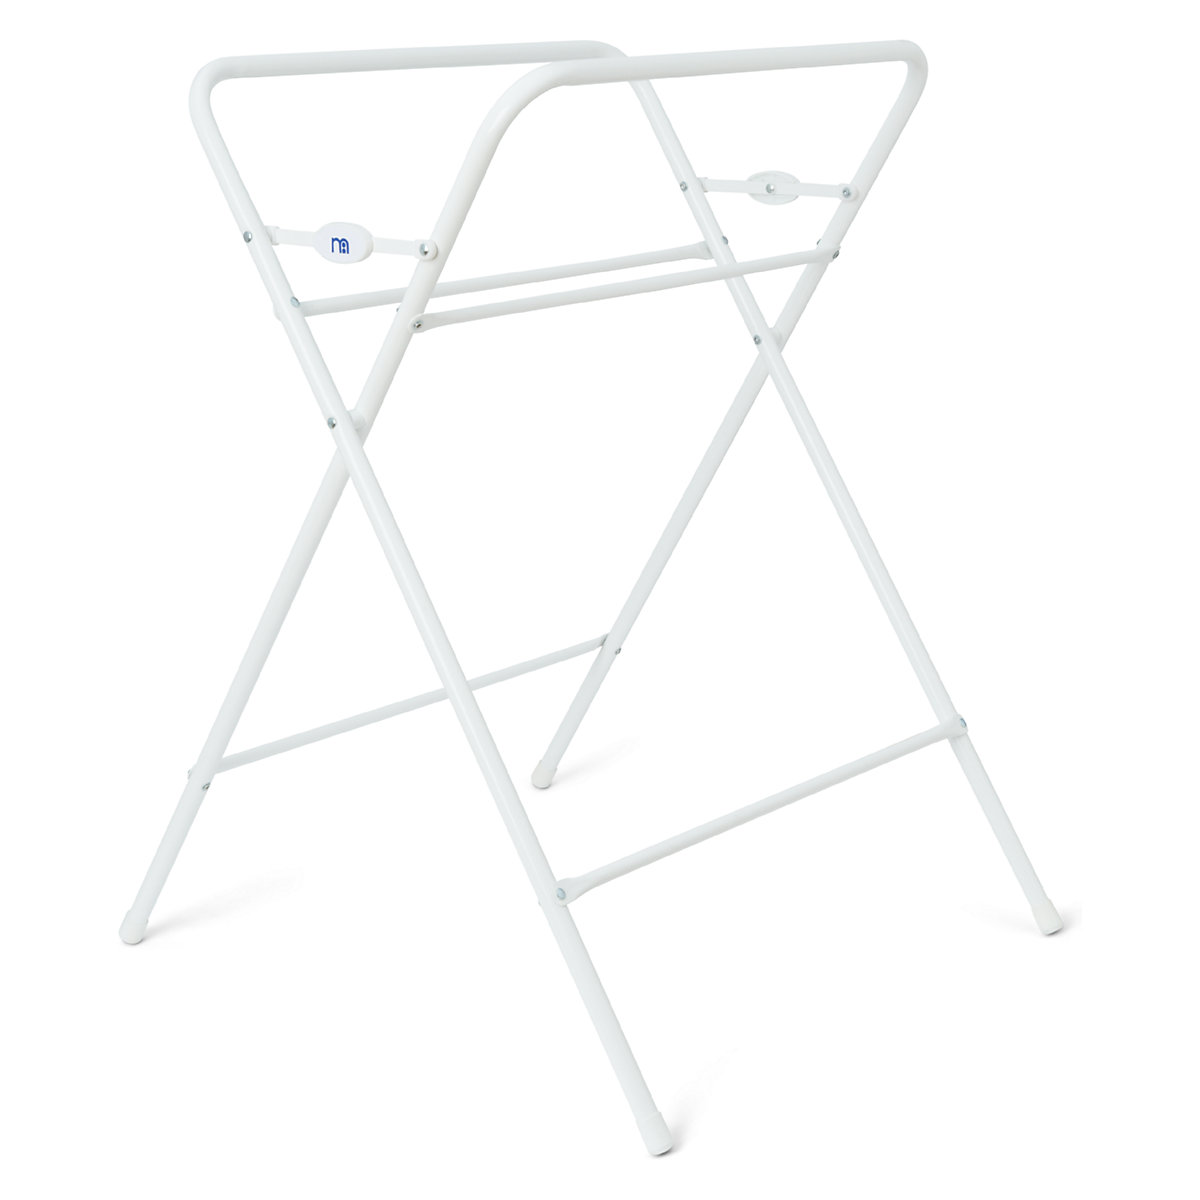 Mothercare Folding Baby Bath Stand | £5.00 | Bluewater